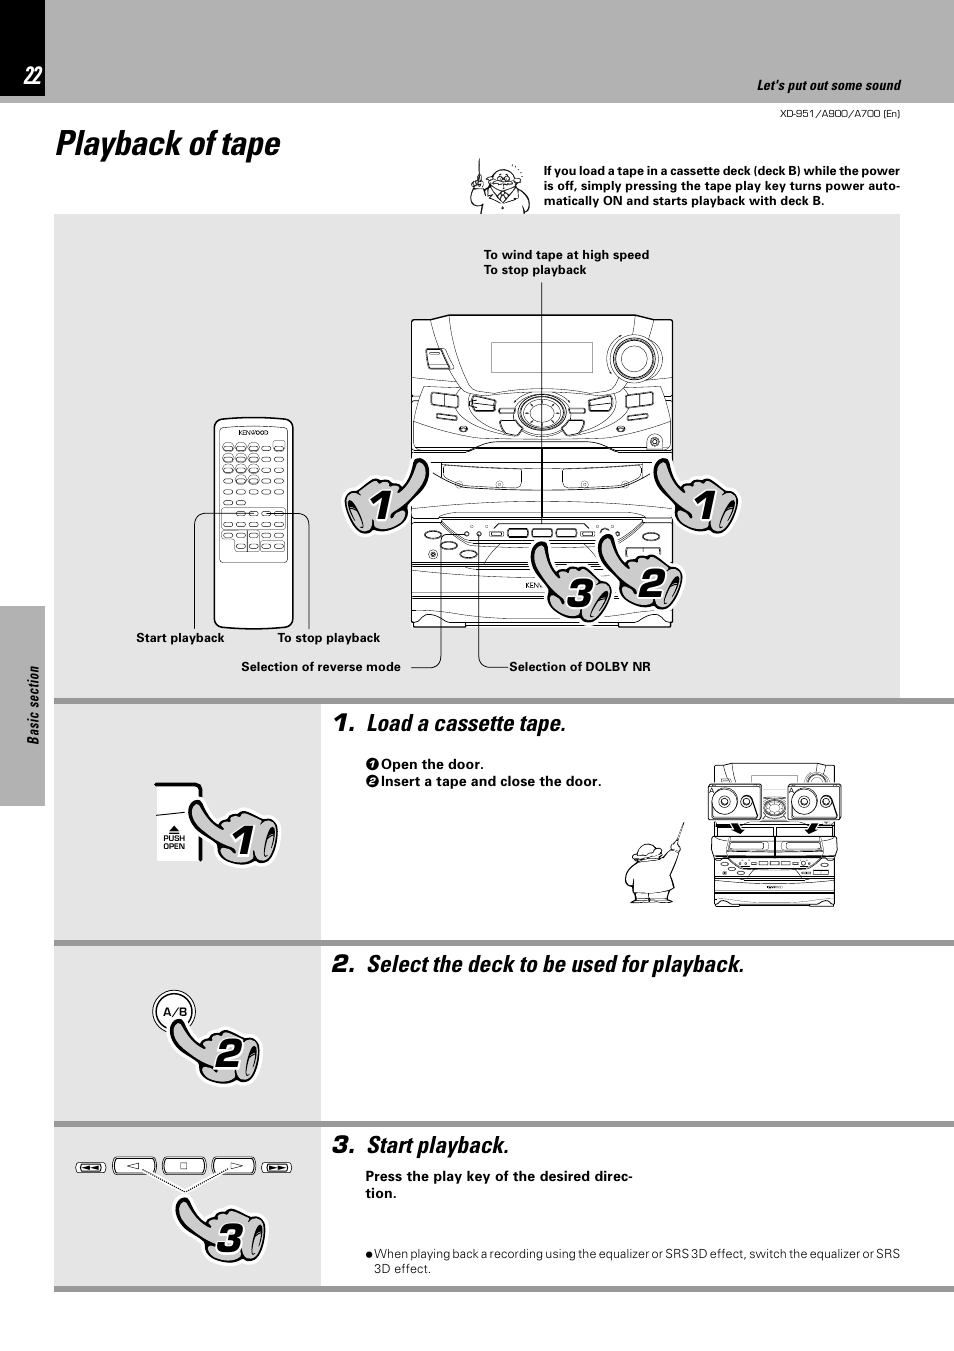 playback of tape kenwood xd a700 user manual page 22 68 rh manualsdir com Kenwood Chef Attachments Kenwood Major